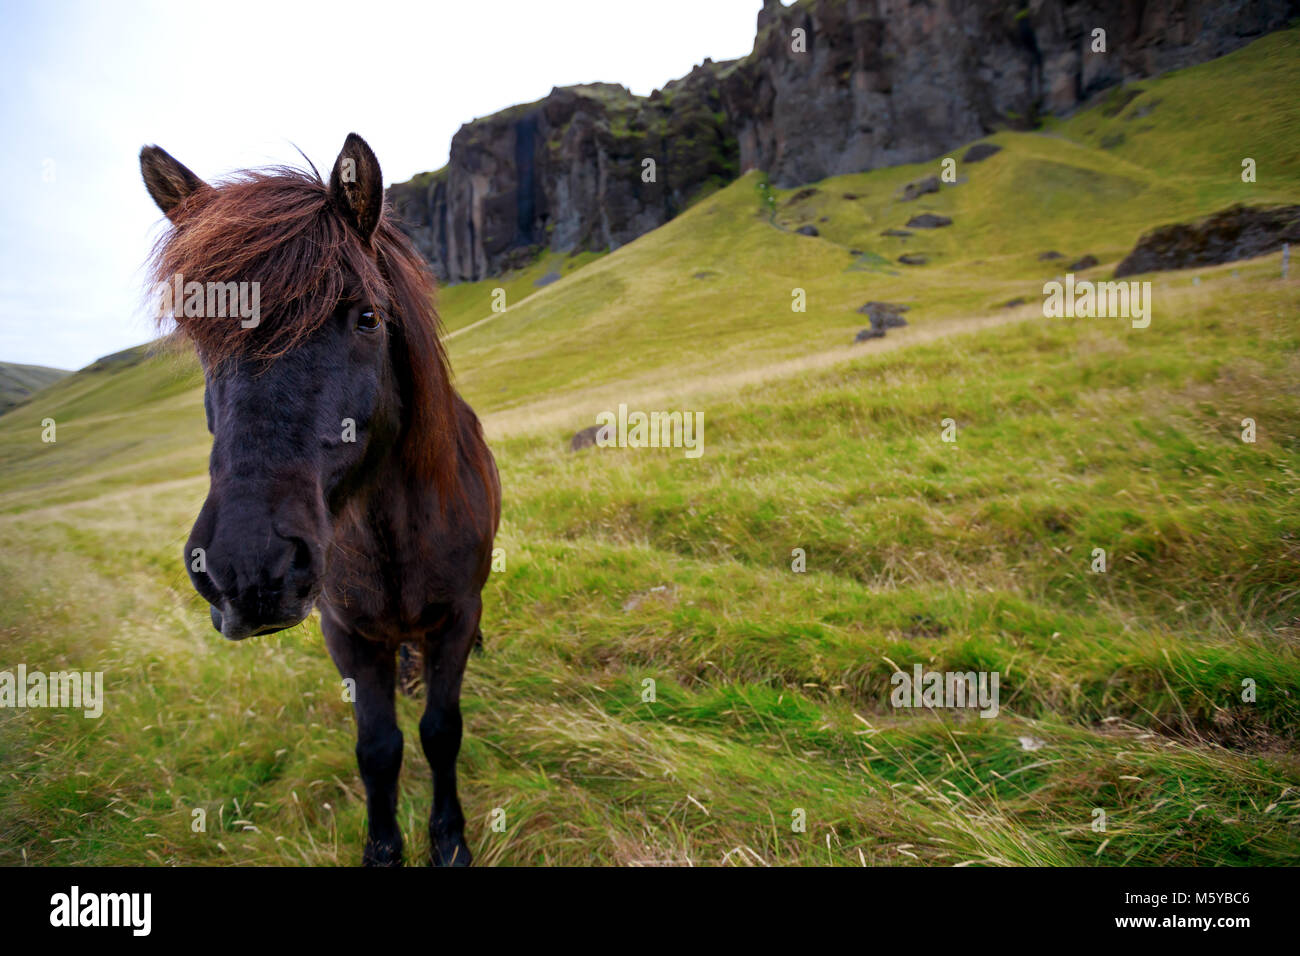 A lone Icelandic horse in the countryside of Iceland - Stock Image